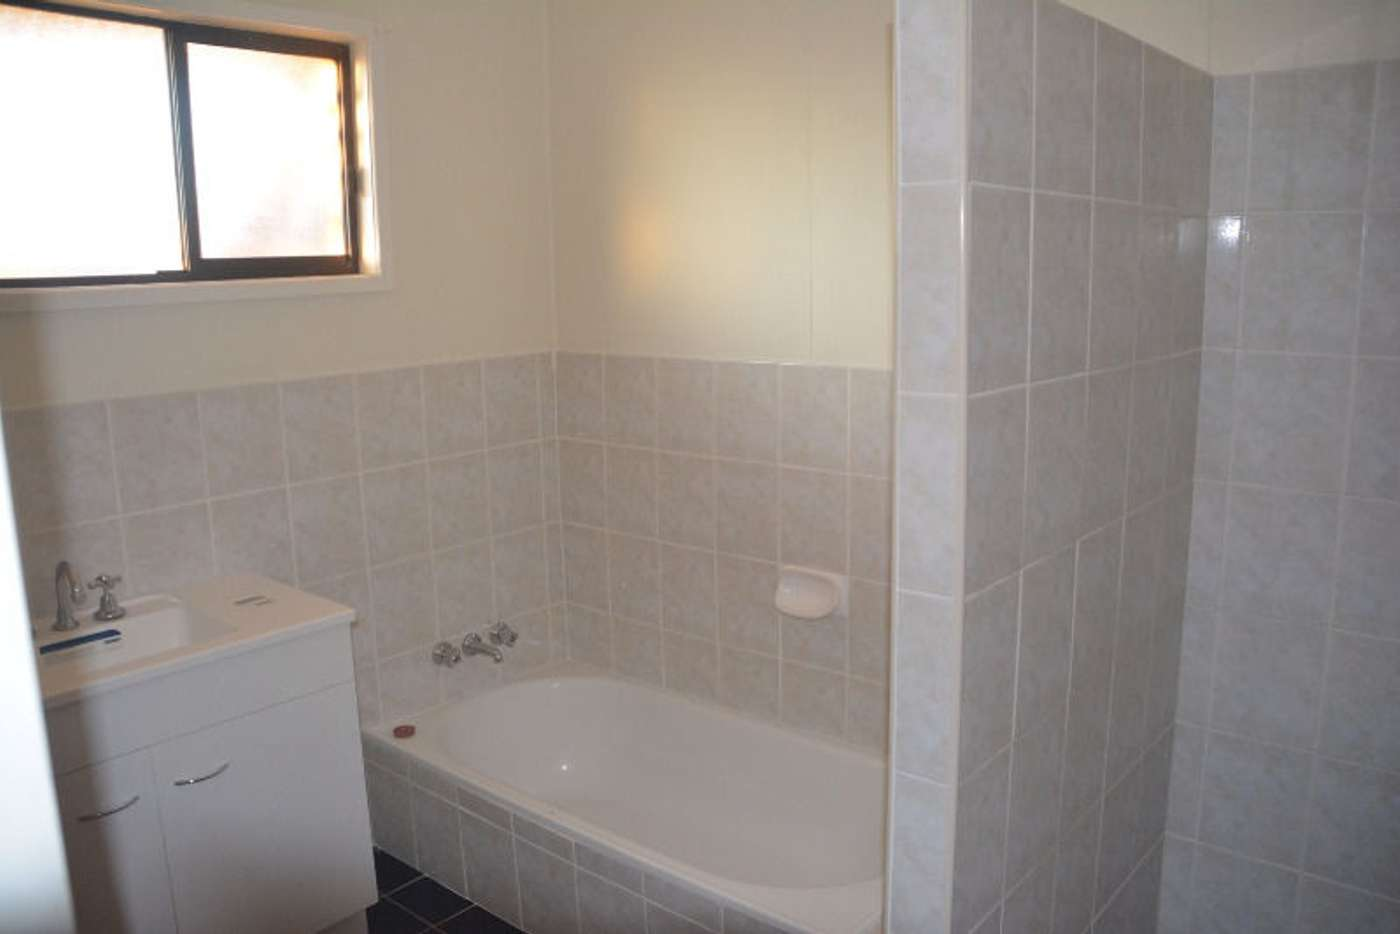 Sixth view of Homely house listing, 20 Grey Street, Nanango QLD 4615